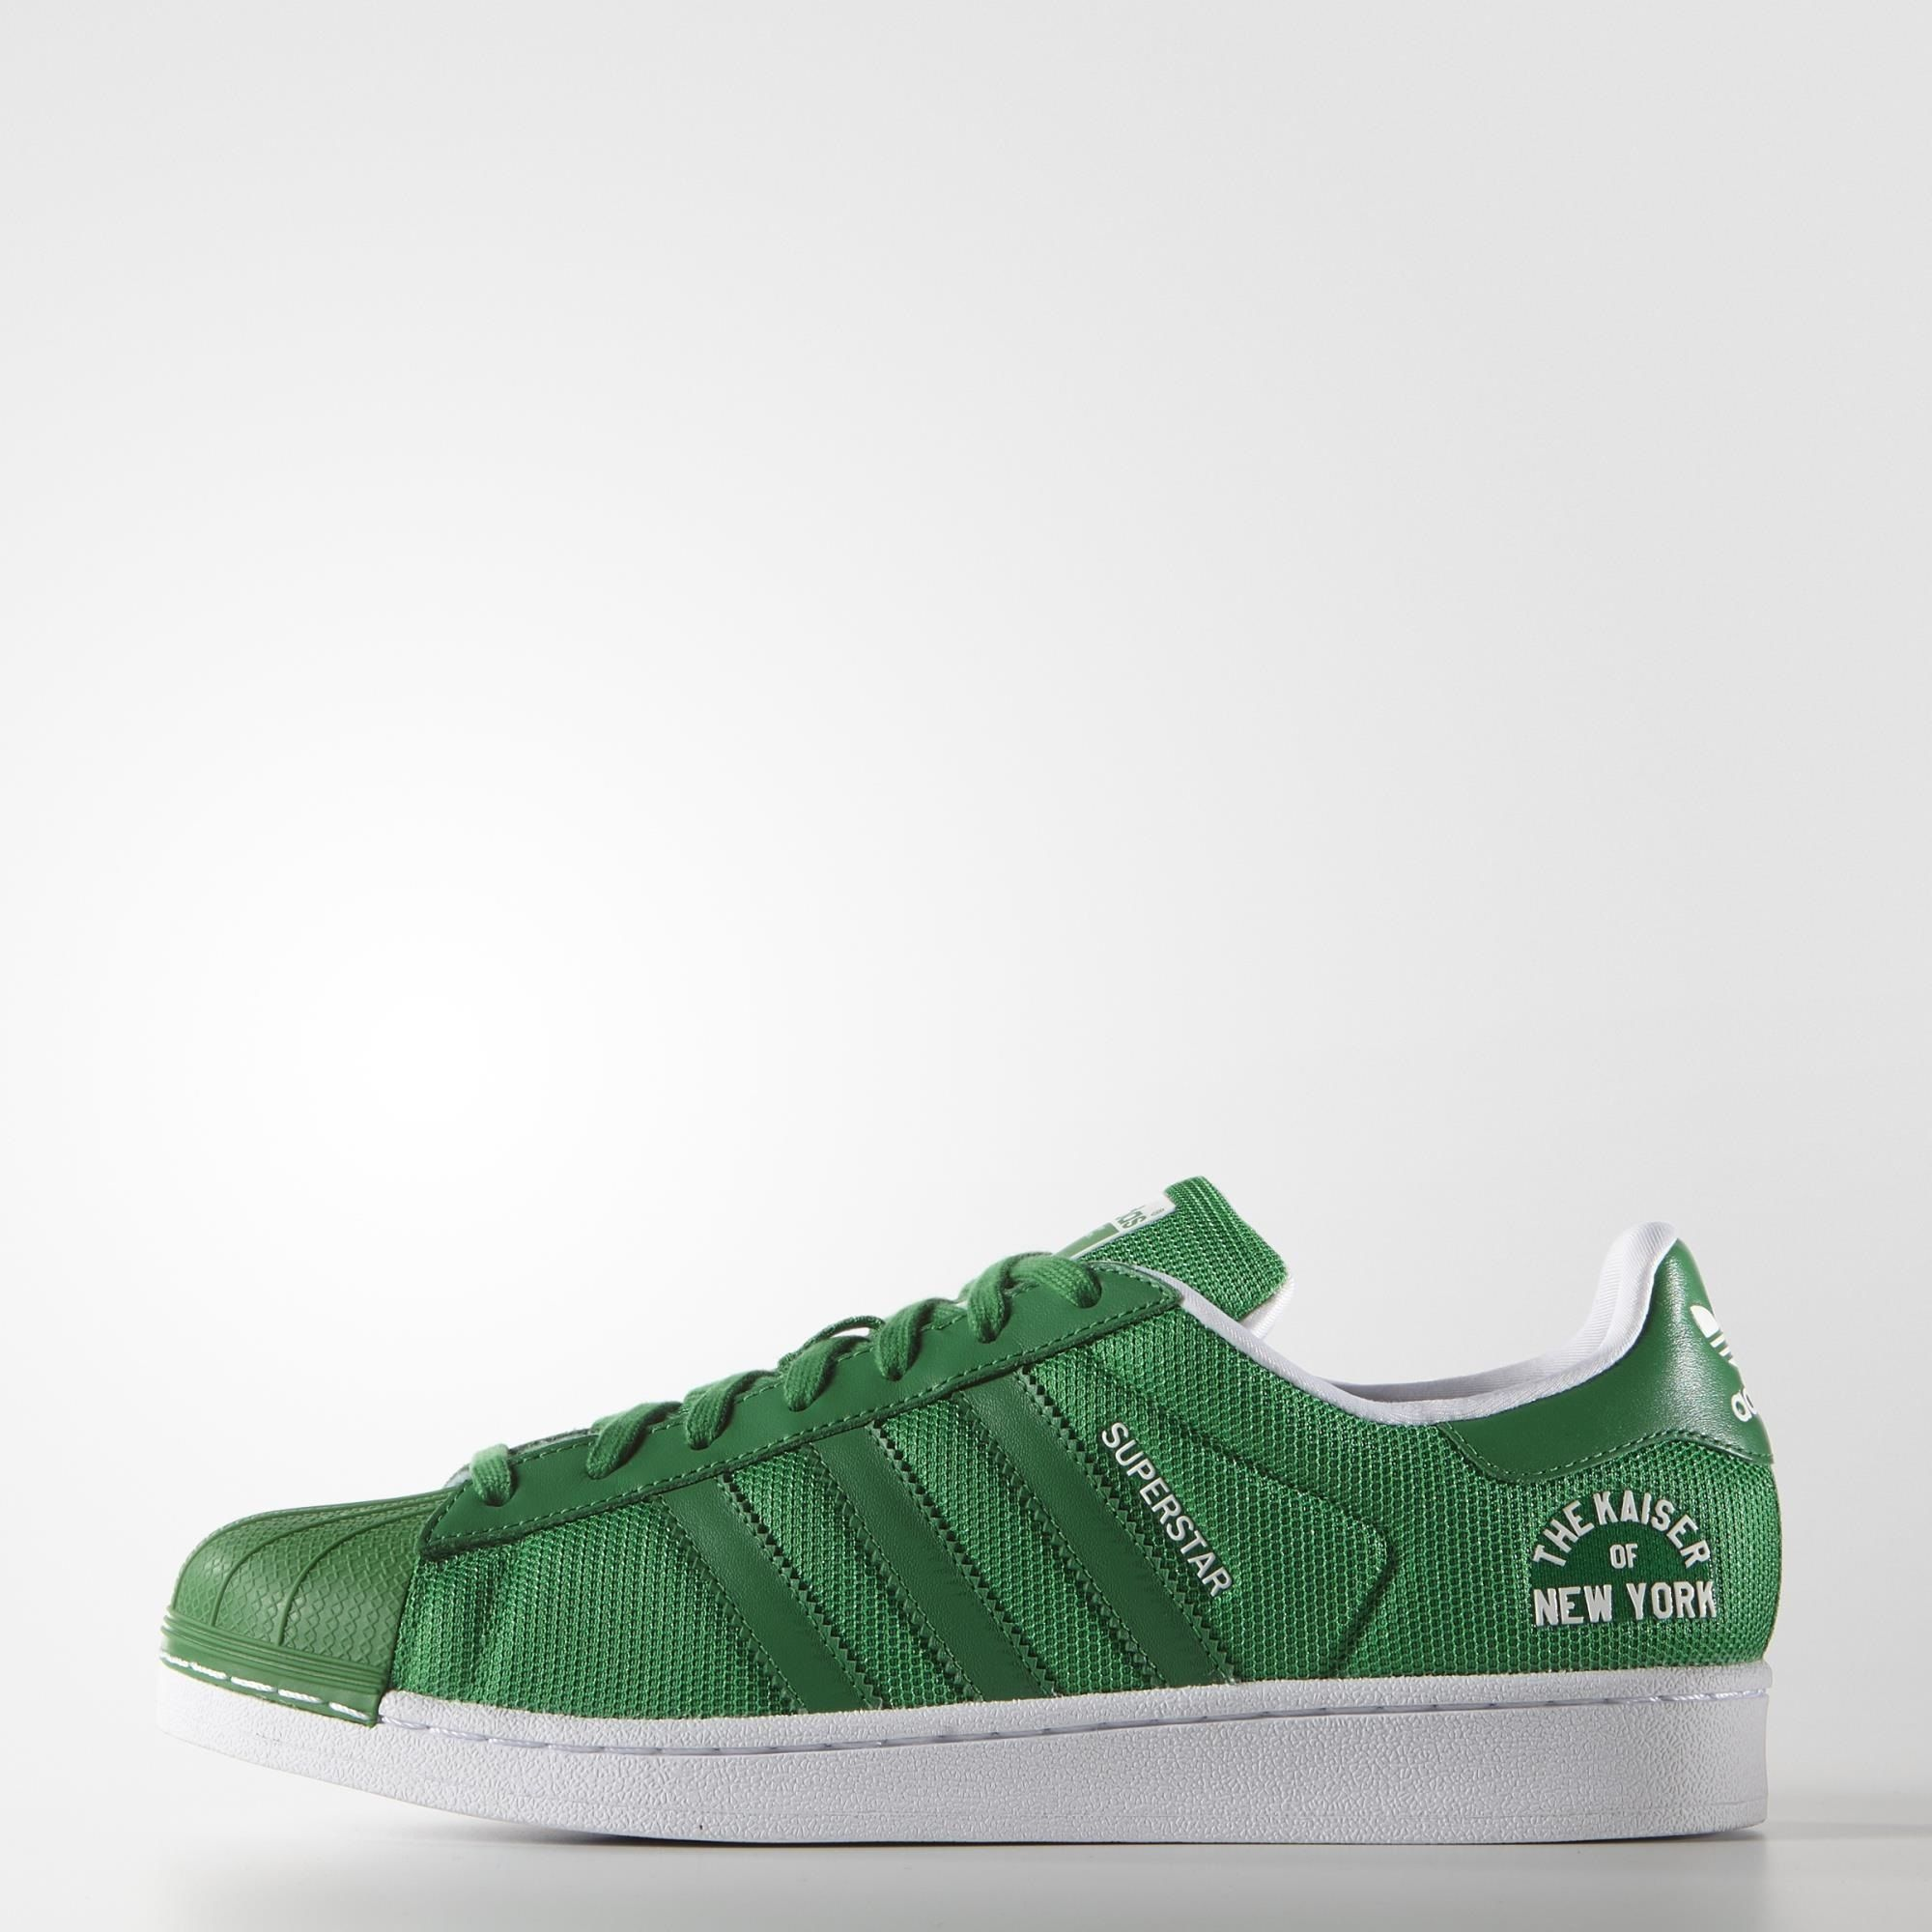 Red White Adidas Superstar 2 Ef Graffiti Shoes More Discounts